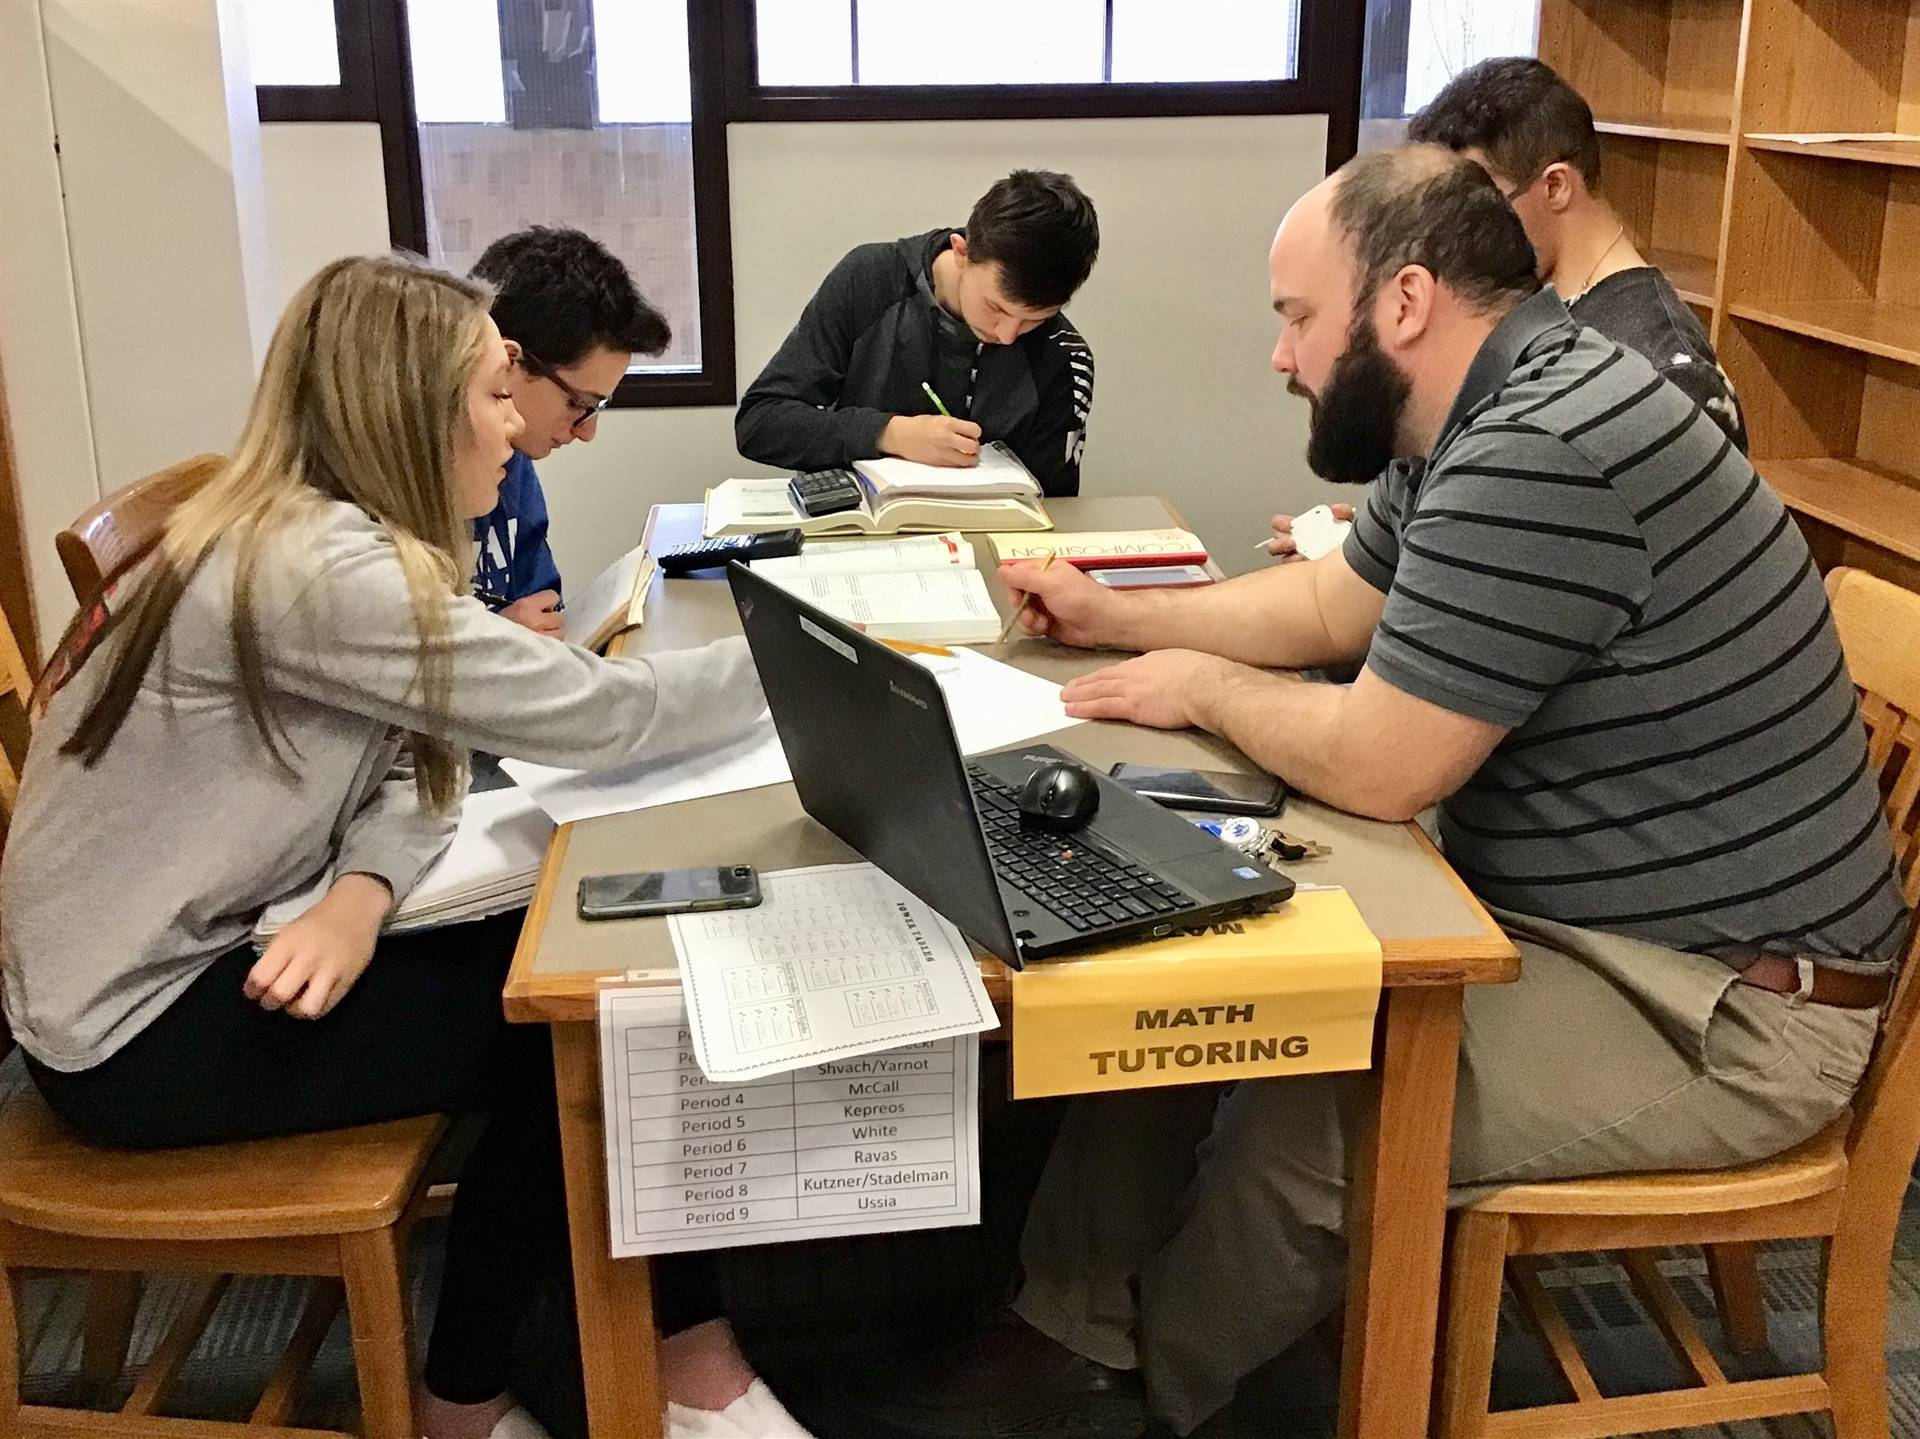 Math tutoring at the HS Library